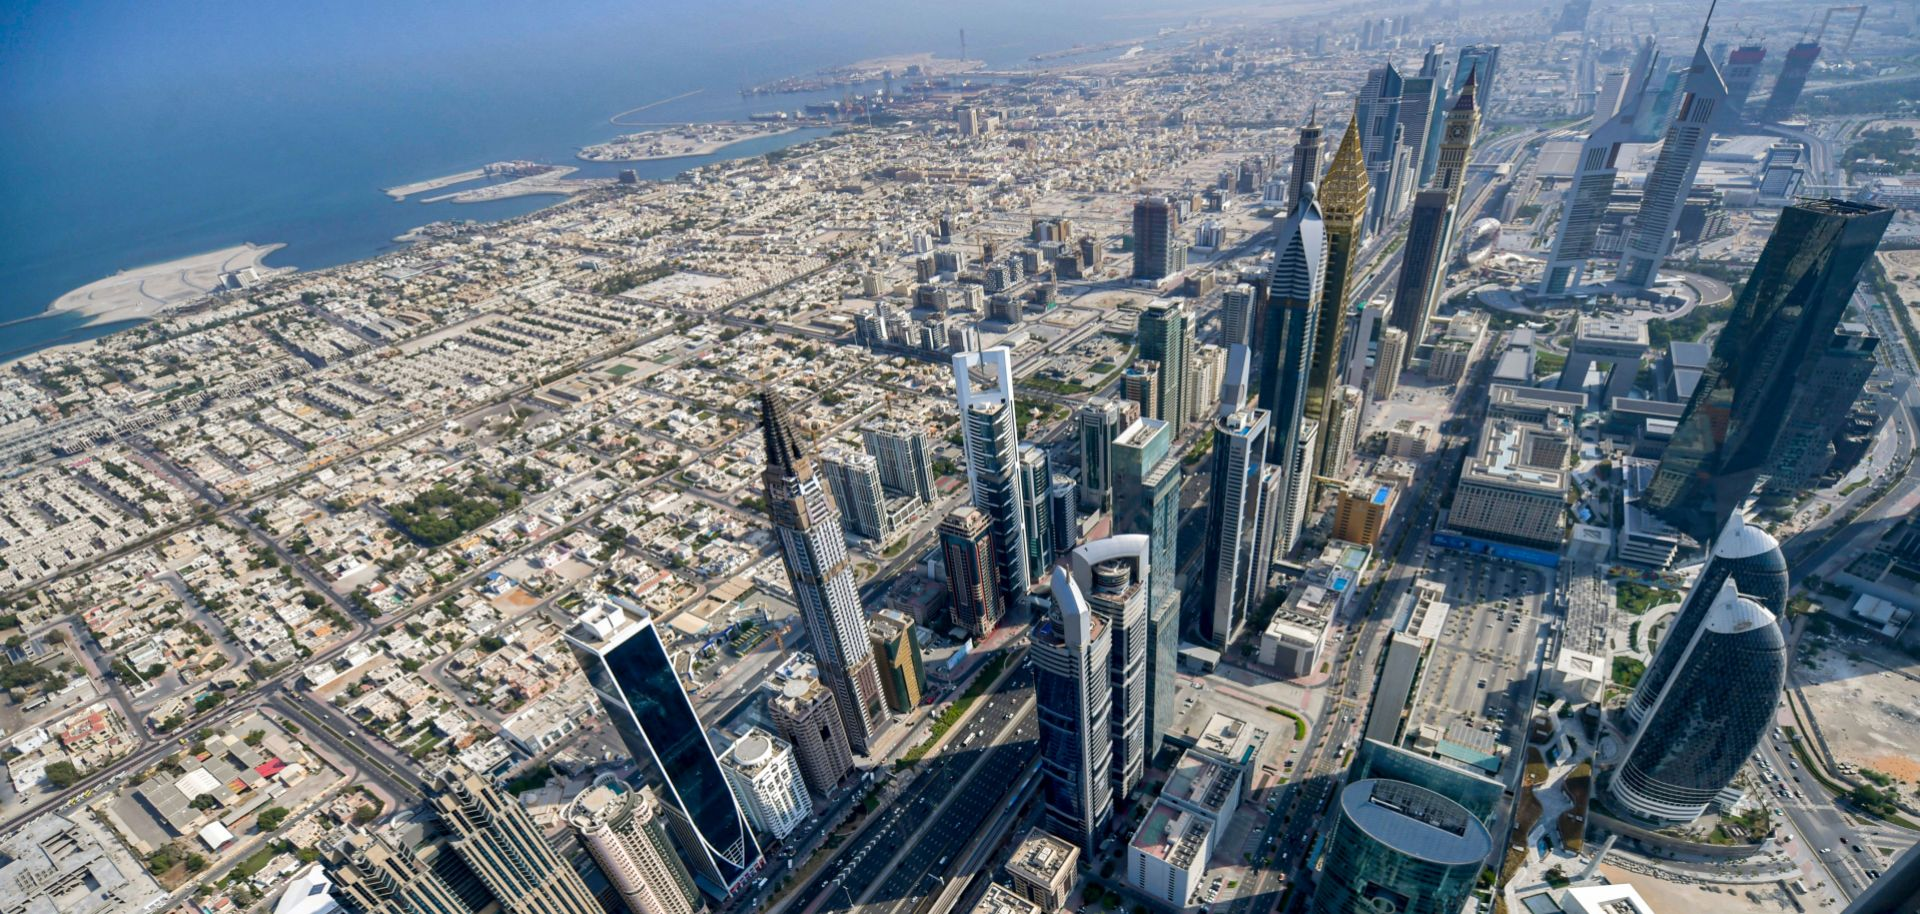 A picture taken during a helicopter tour organized by the government of the United Arab Emirates shows an aerial view of Dubai on July 8, 2020.